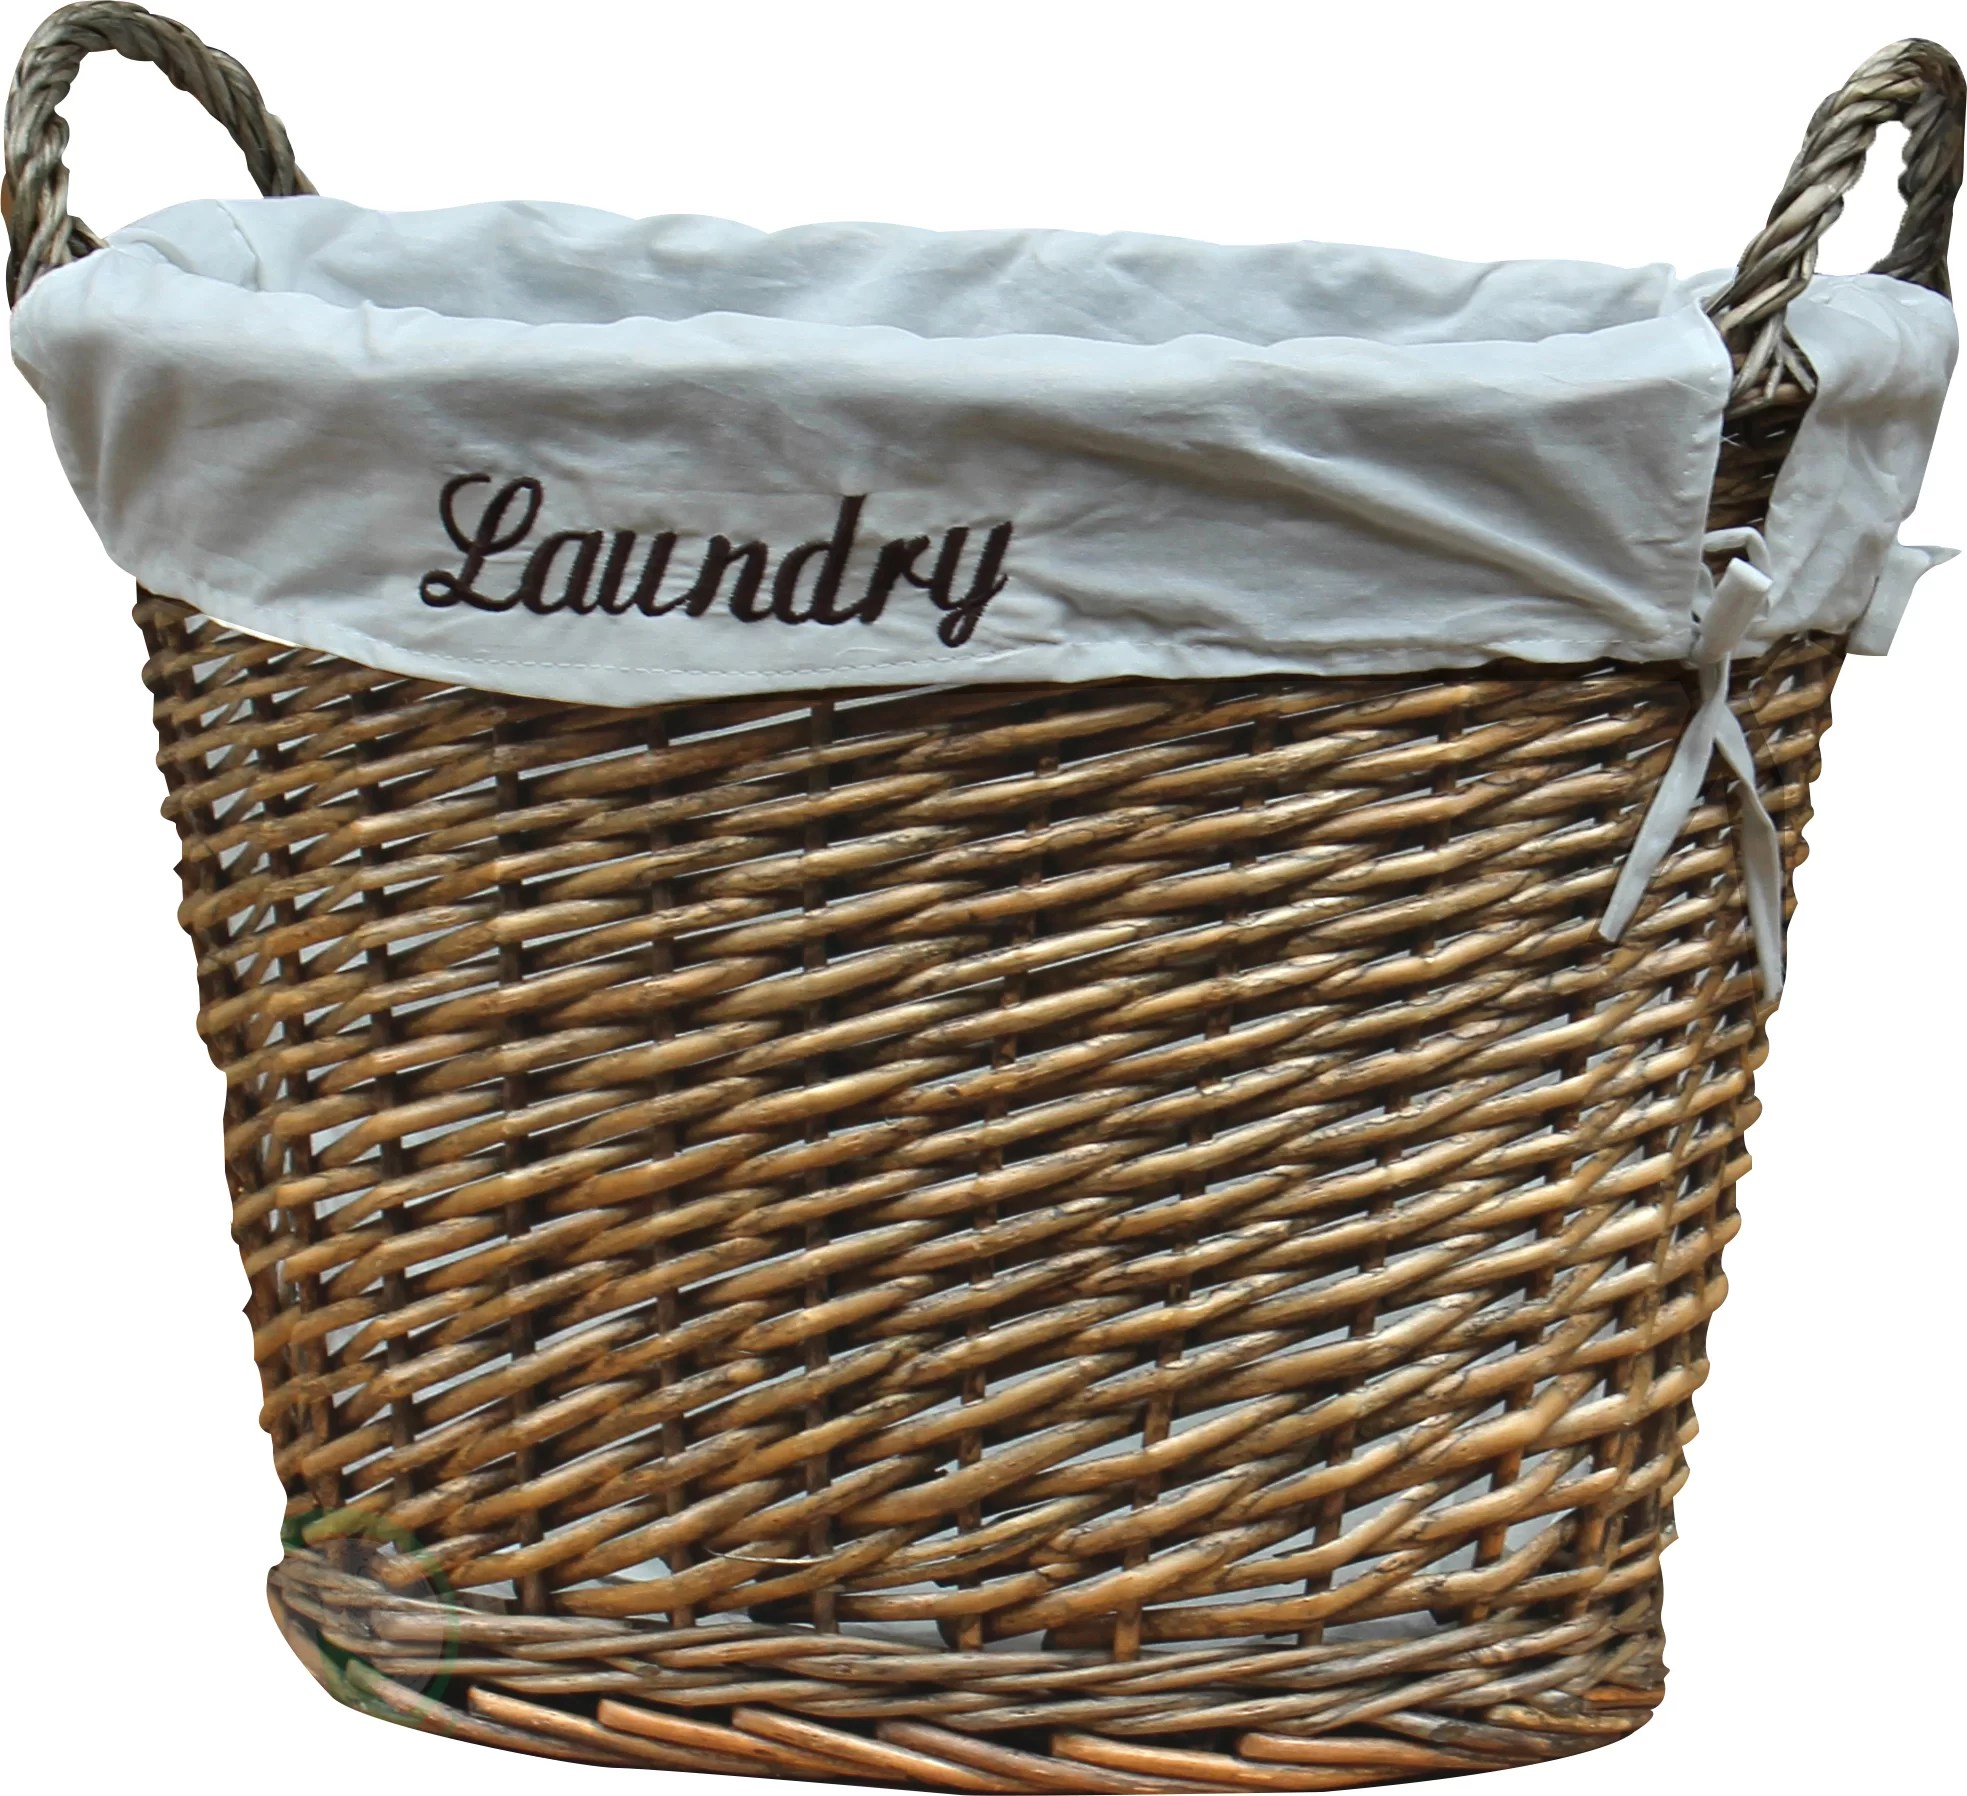 Wicker Laundry Baskets Quickway Imports Wicker Laundry Basket Ebay